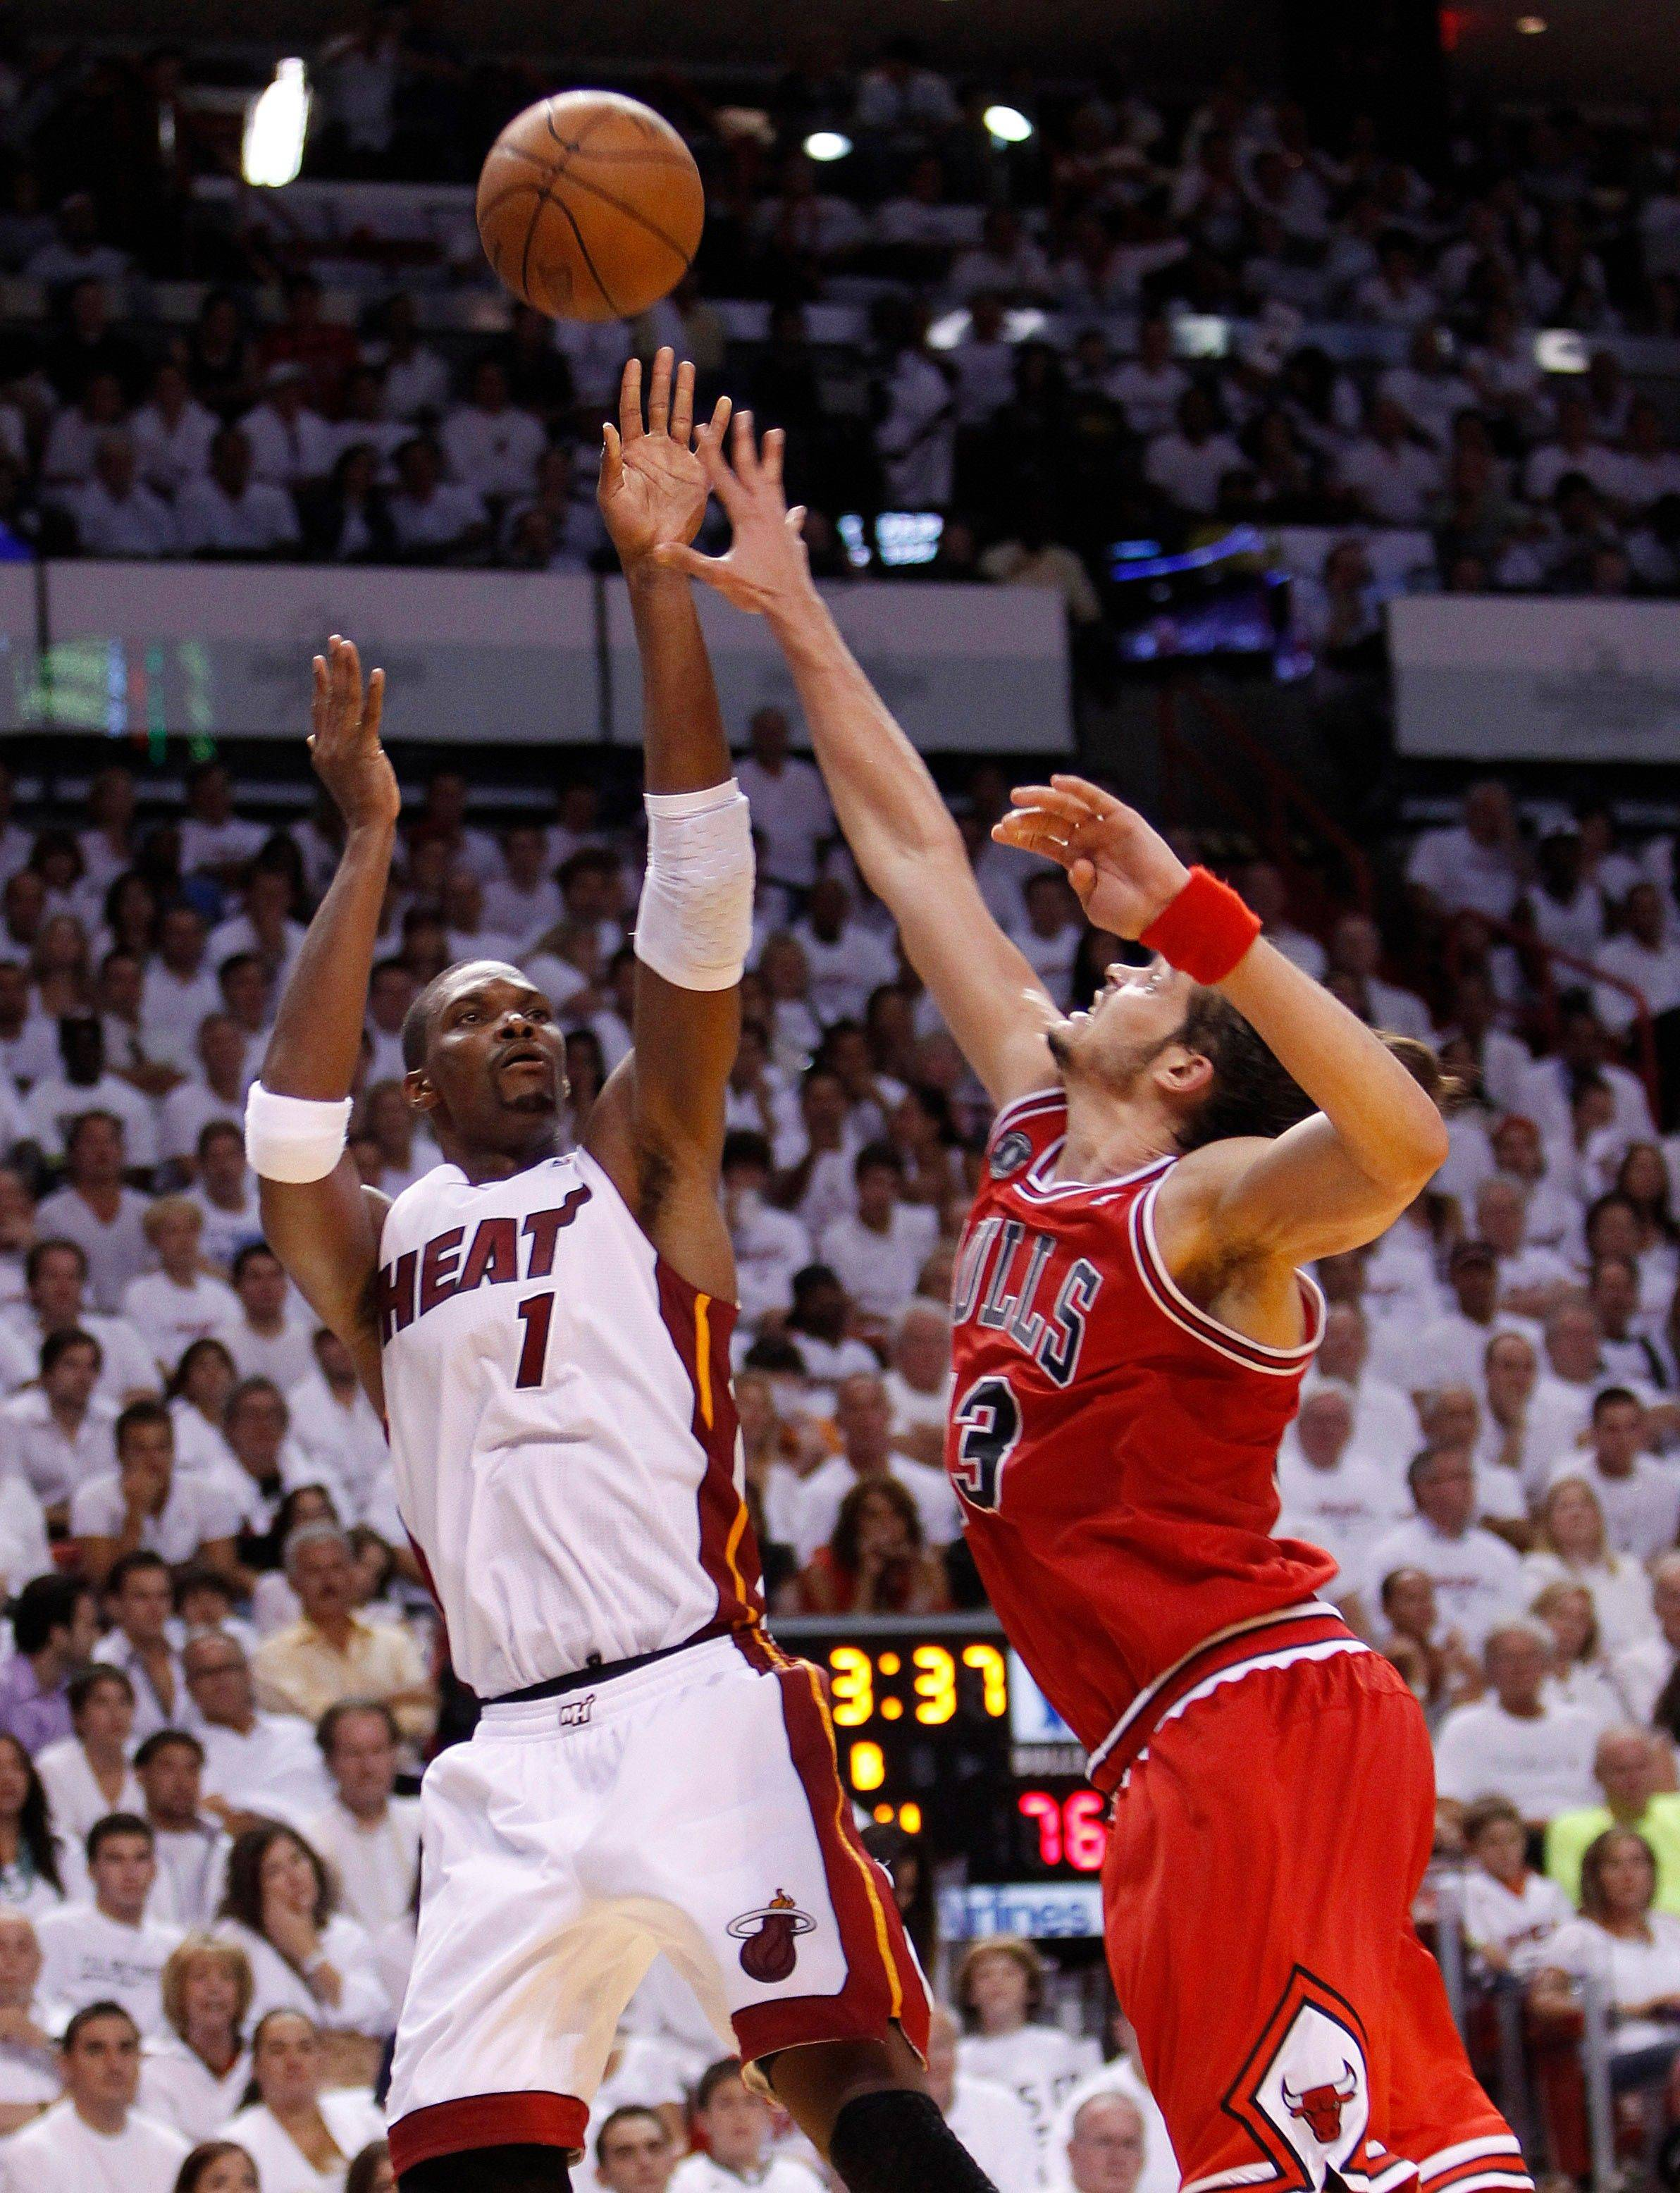 Miami Heat's Chris Bosh (1) goes up for a shot against Chicago Bulls' Joakim Noah during the second half of Game 3 of the NBA Eastern Conference finals basketball series in Miami, Sunday, May 22, 2011. The Heat defeated the Bulls 96-85.